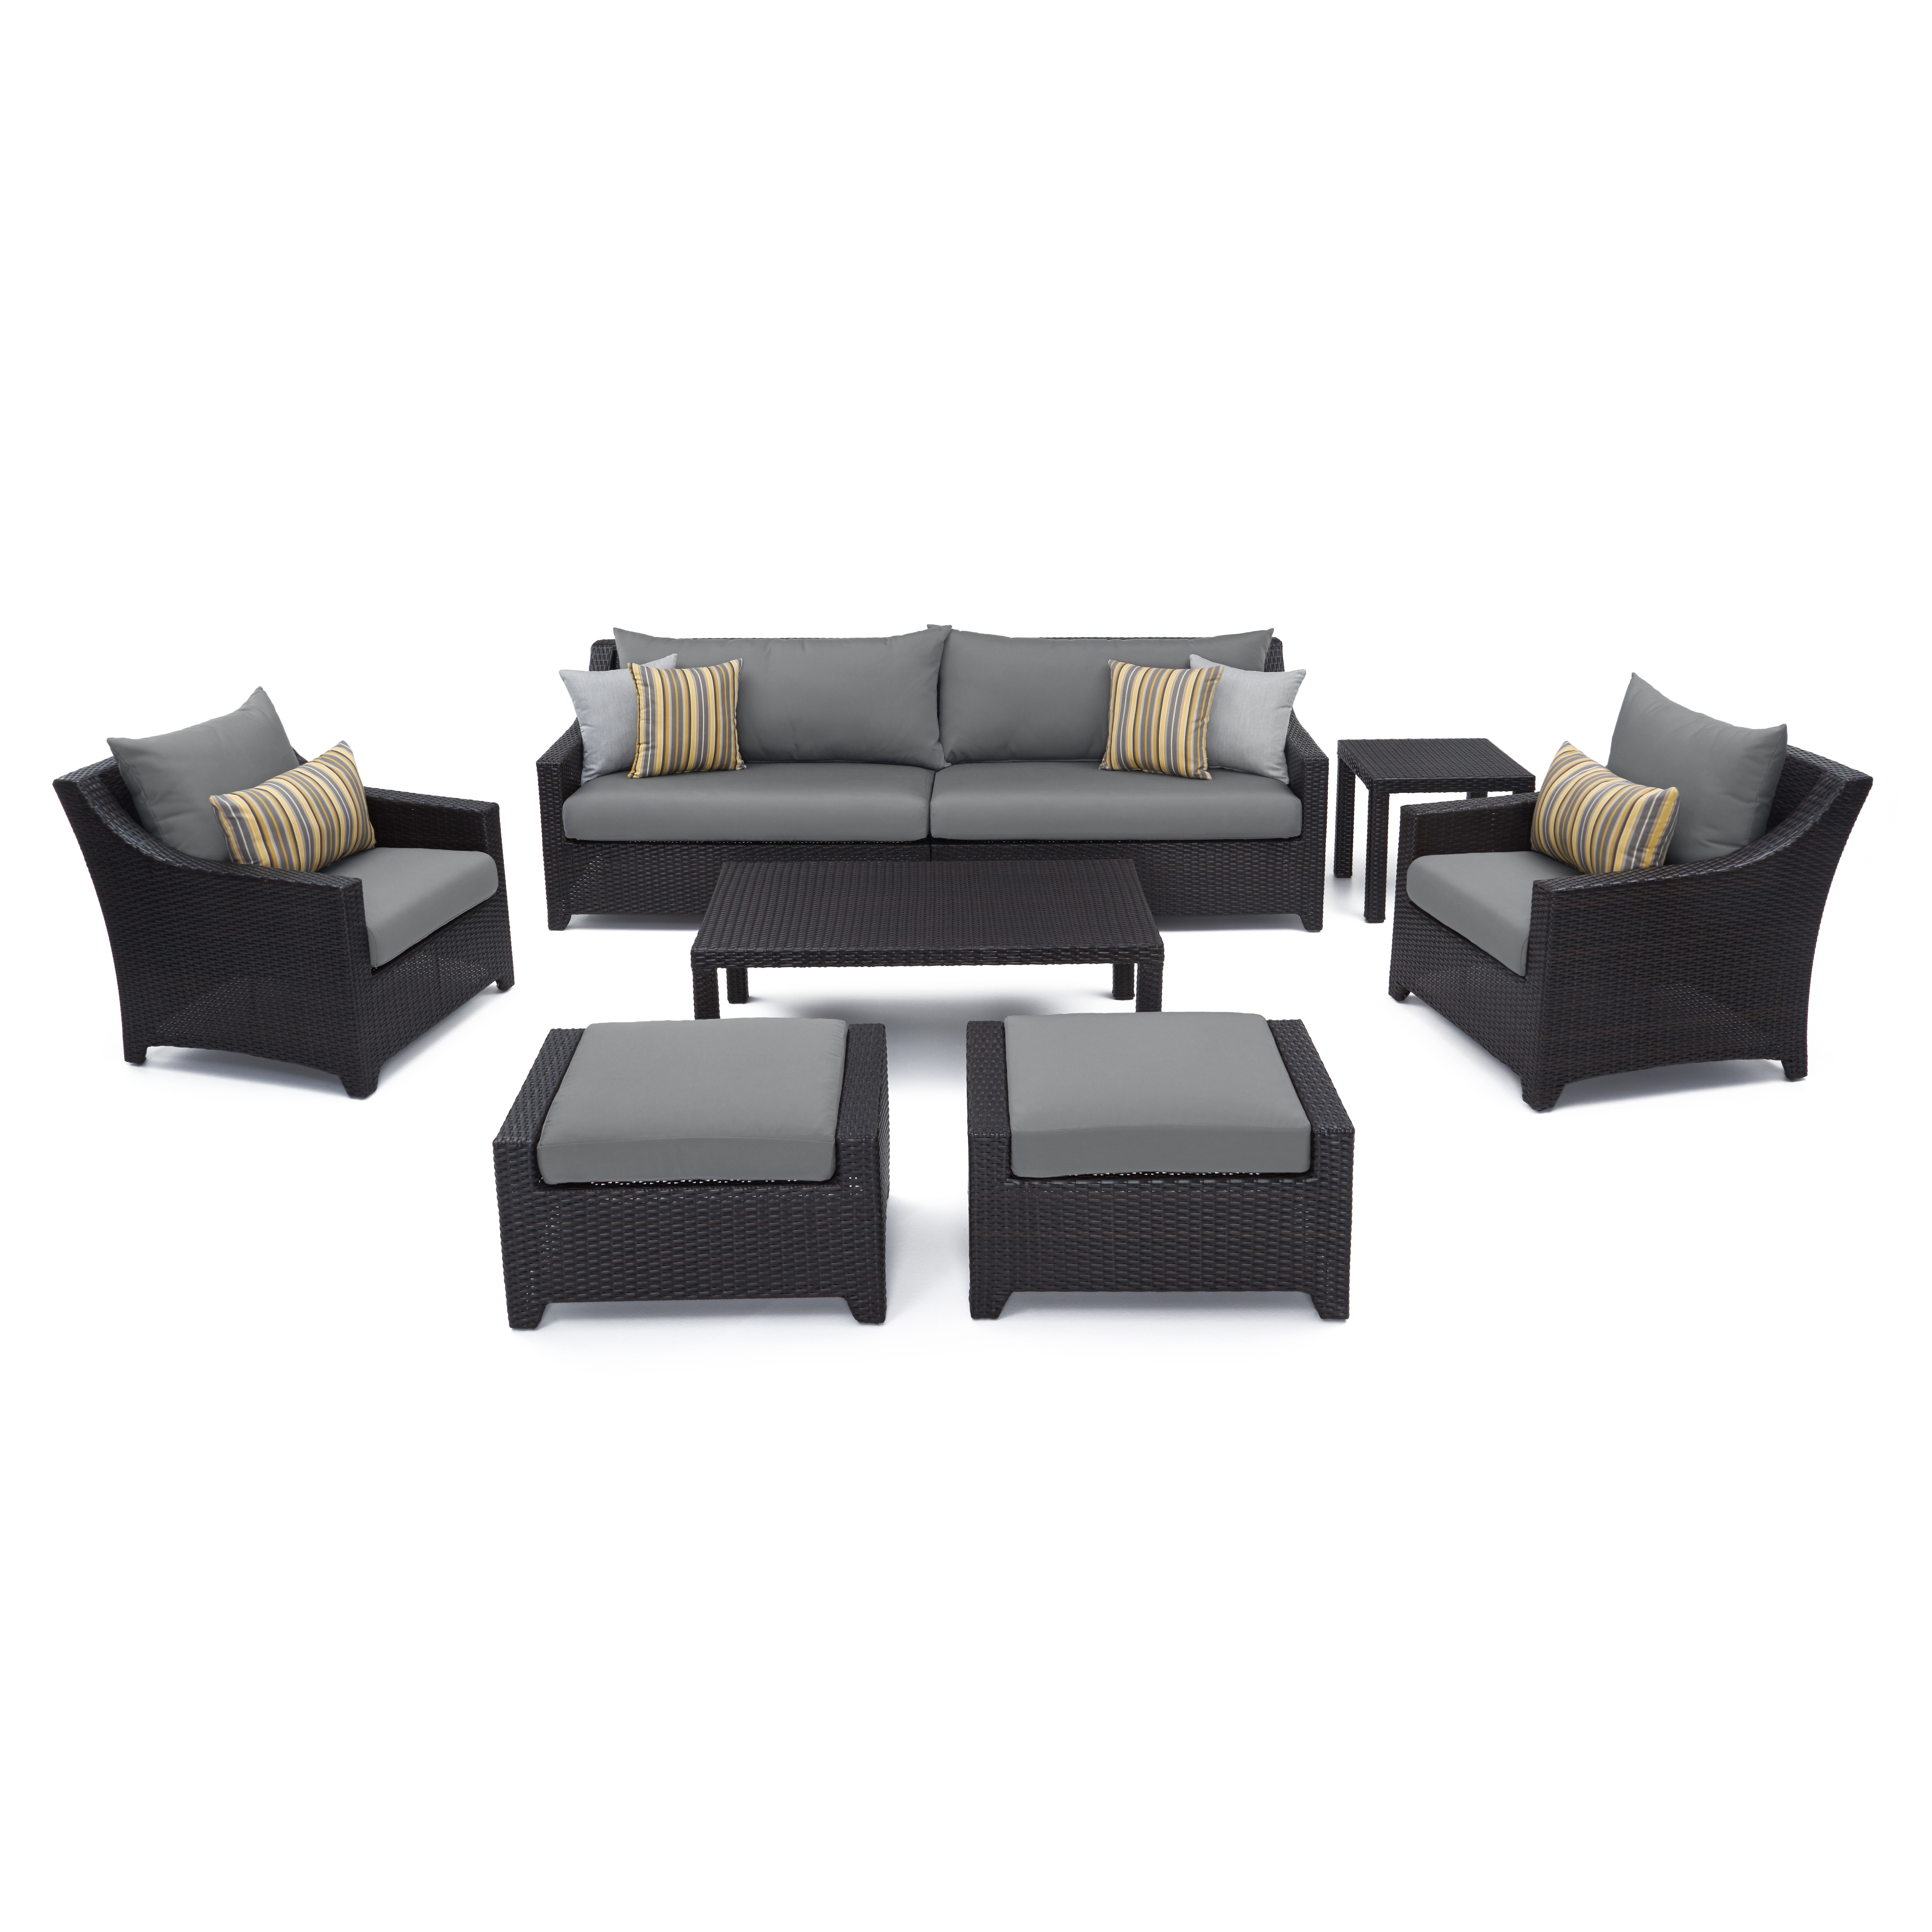 Northridge 8 Piece Sofa Seating Group With Sunbrella Cushions Within Popular Northridge Patio Sofas With Sunbrella Cushions (View 11 of 20)